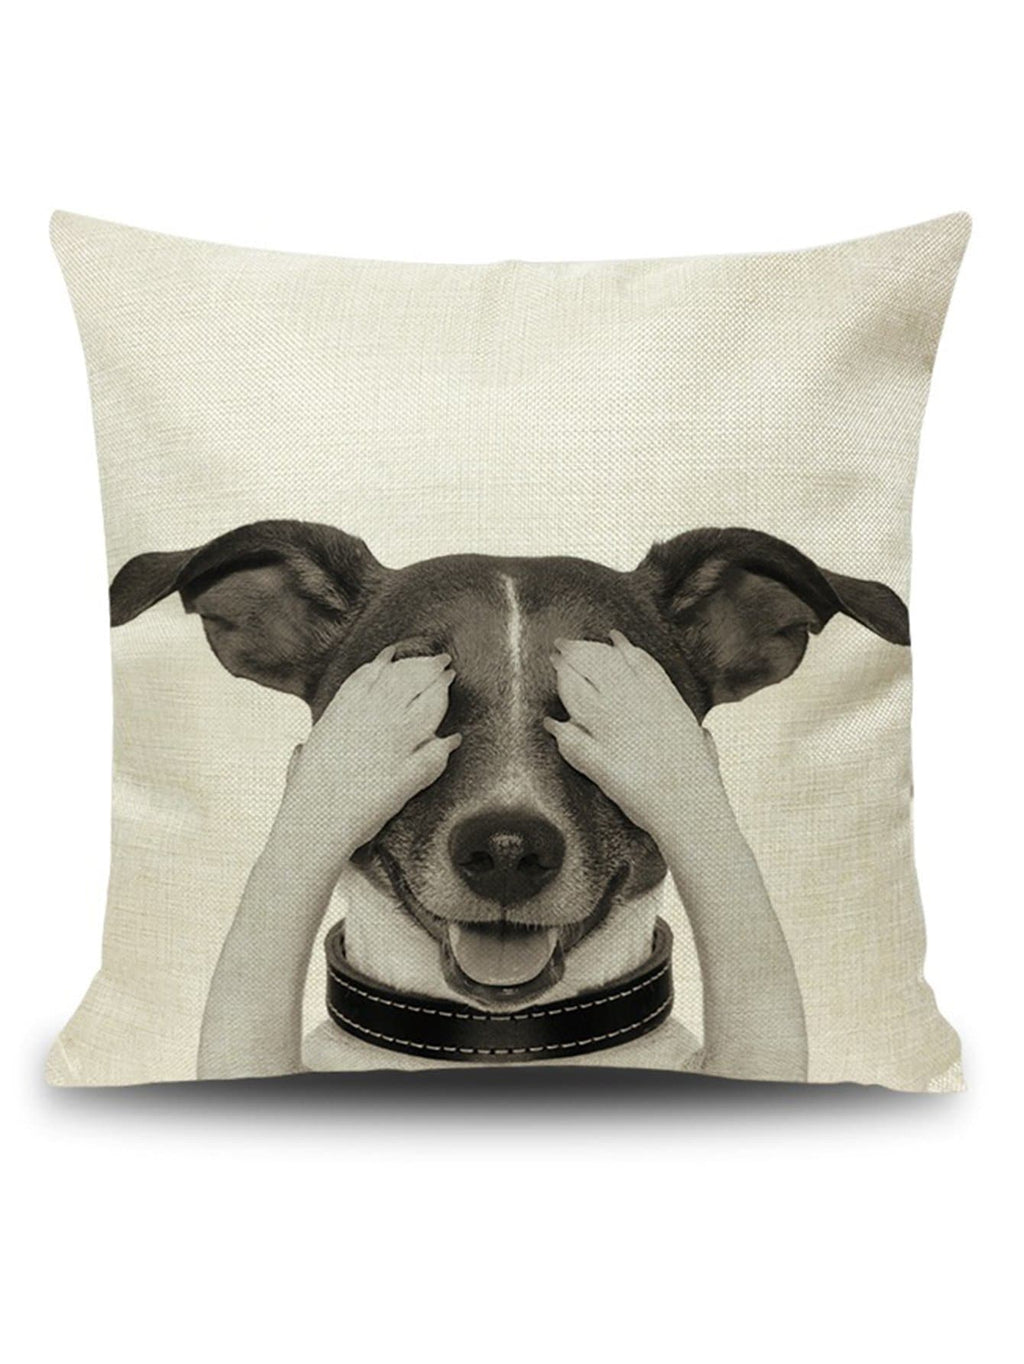 Doggy Throw Pillow Cover